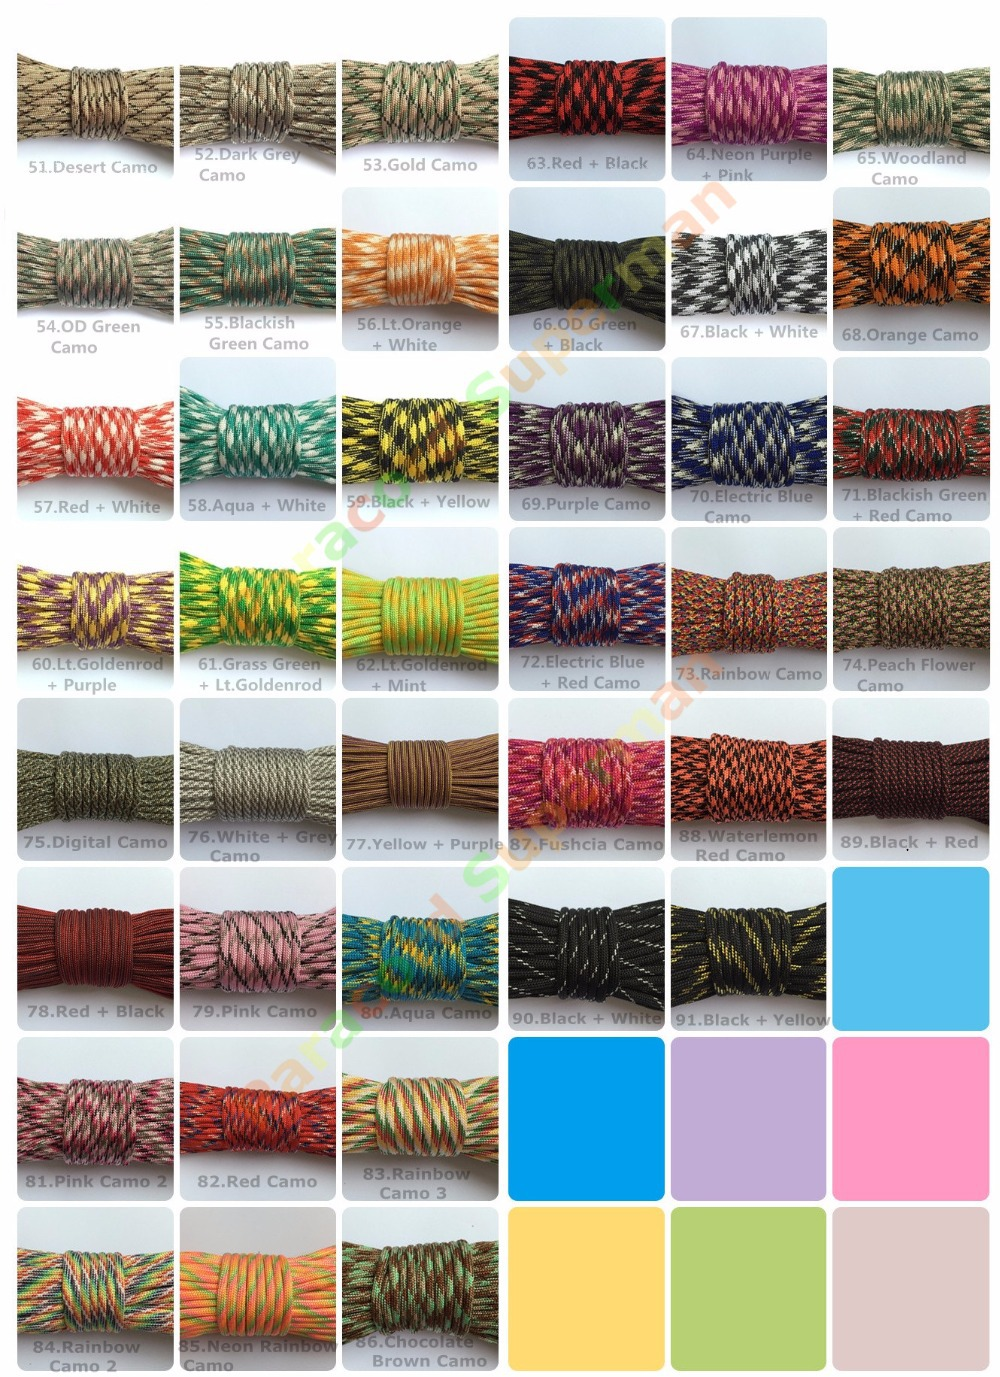 New 100% Nylon 550 Paracord Mil-Spec Type III Parachute Cord Lanyard Rope 7 cores inside 100 FT per roll 75 colors Free Shipping yougle 550 paracord paracord parachute cord lanyard rope tent guyline mil spec type iii 7 strand core 50 100 ft 215 colors